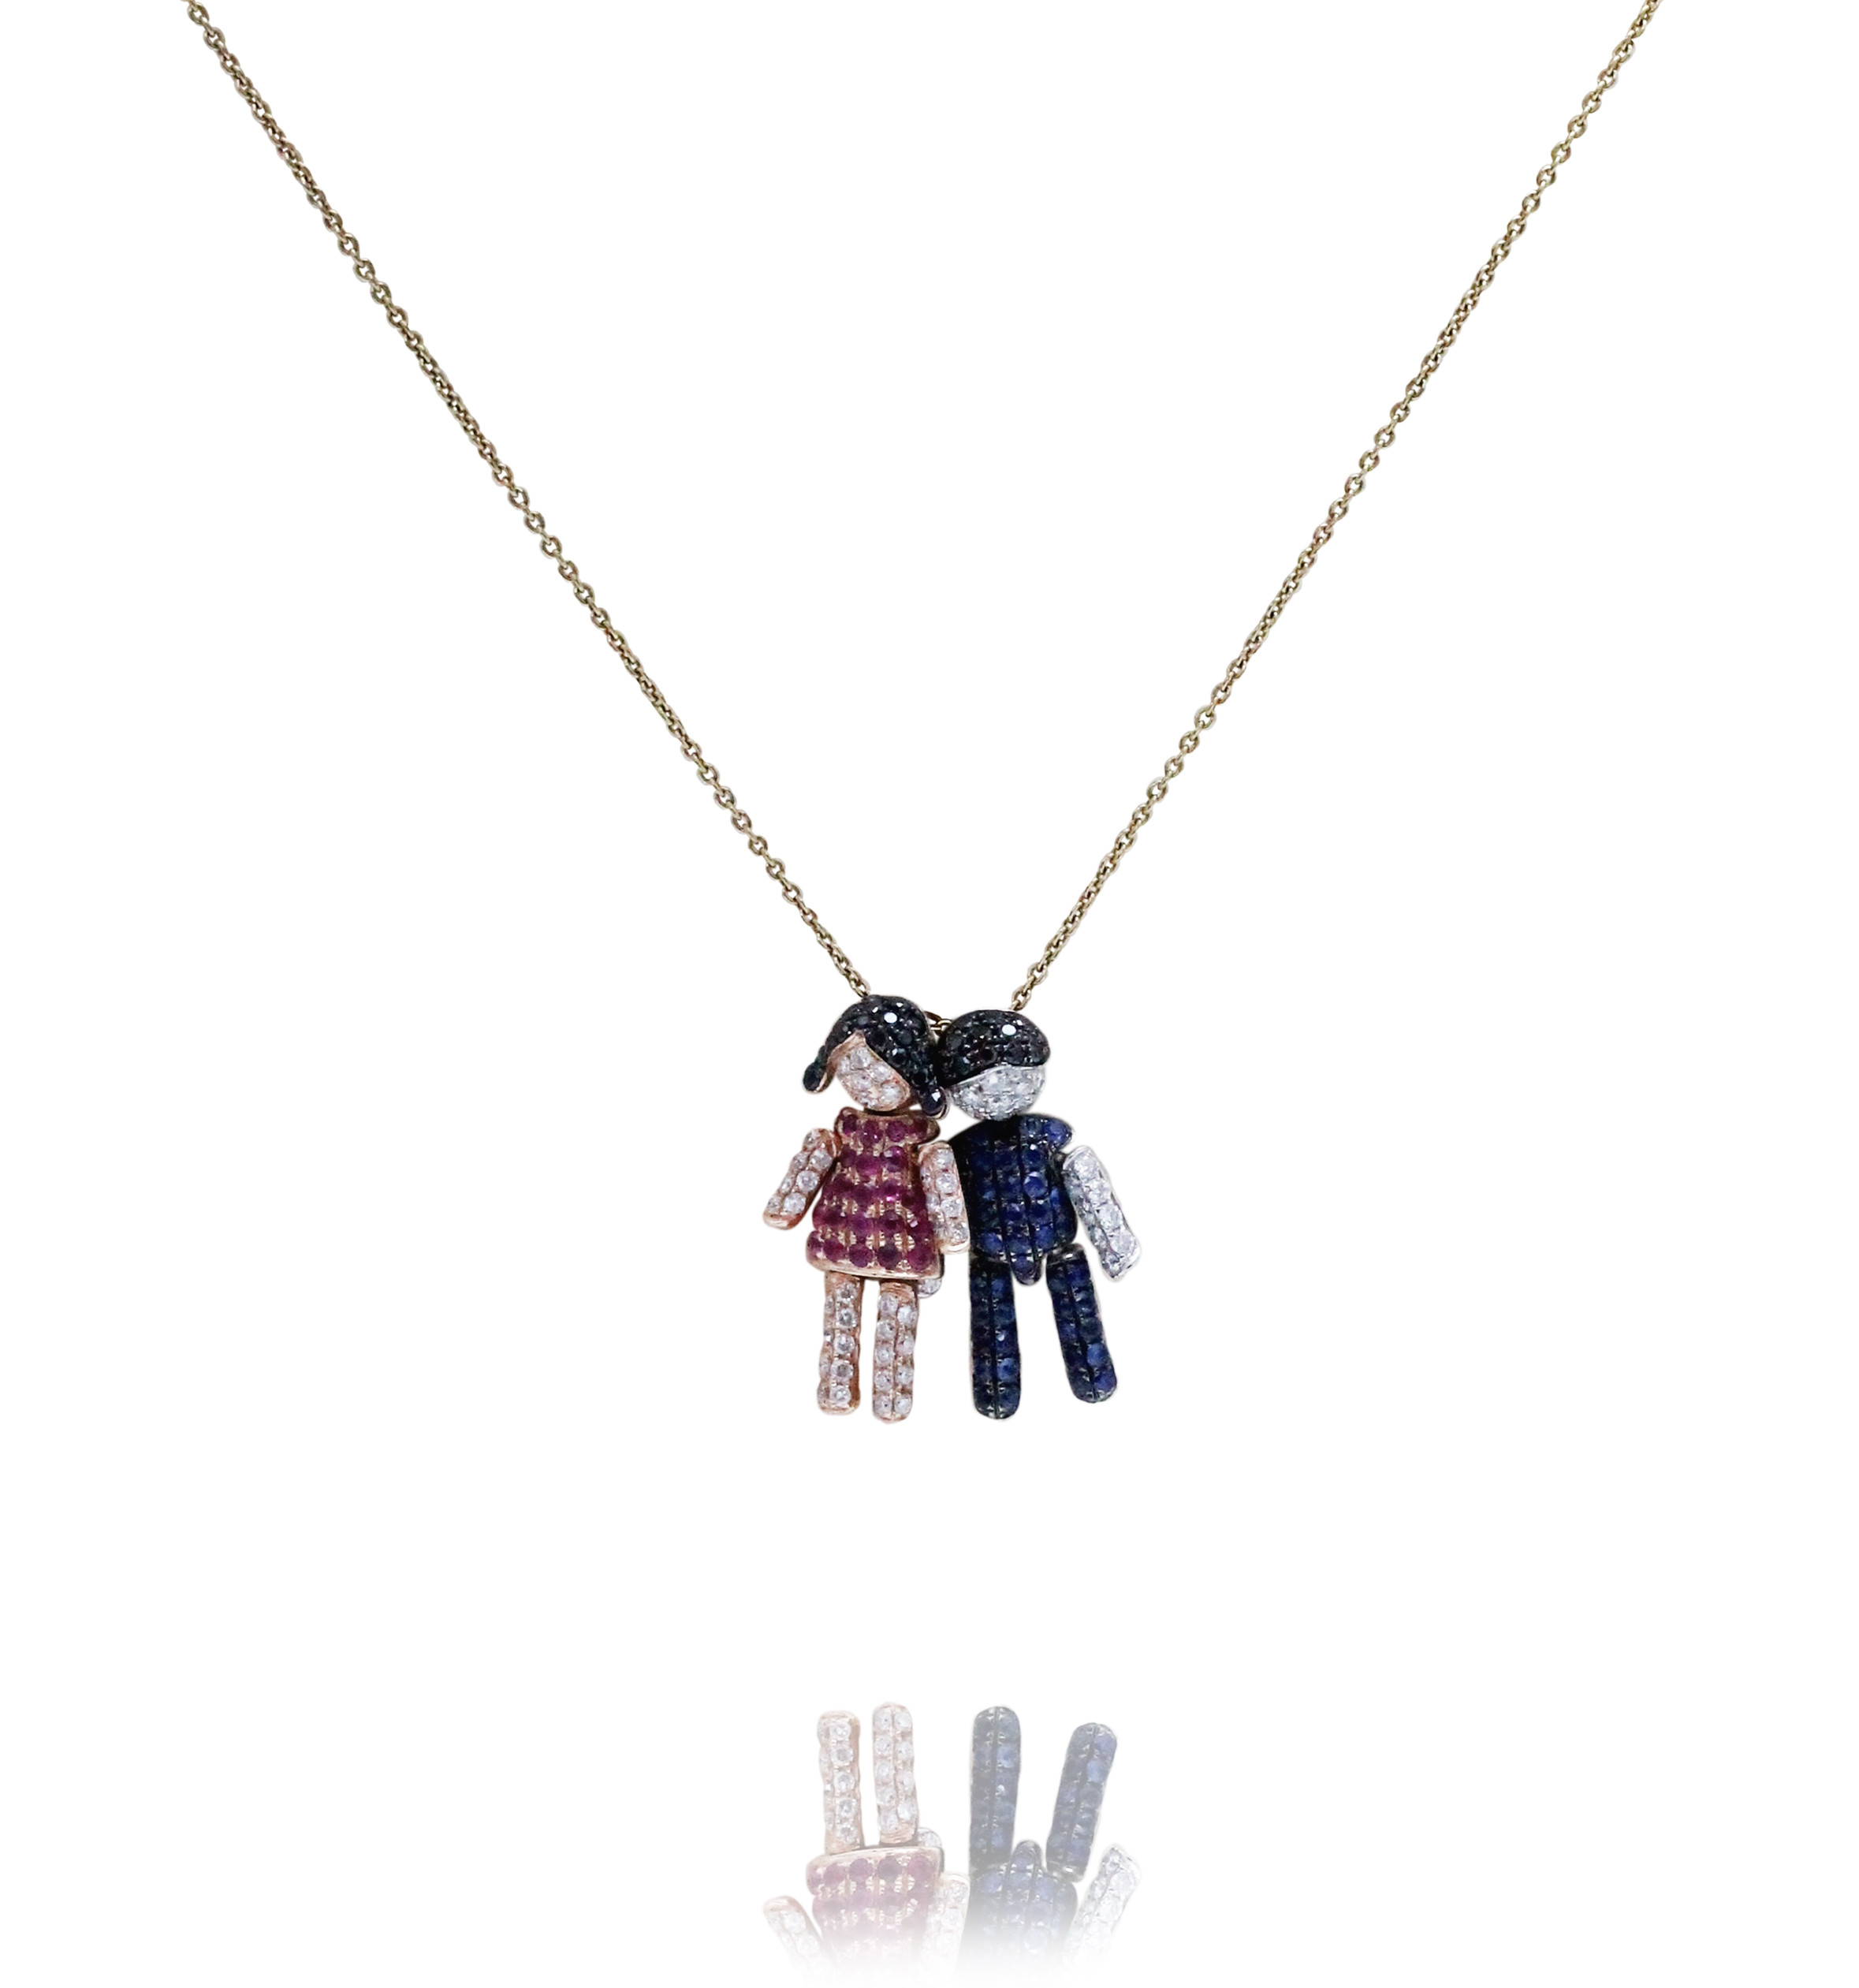 img savvy and products girl boy mate necklace sole